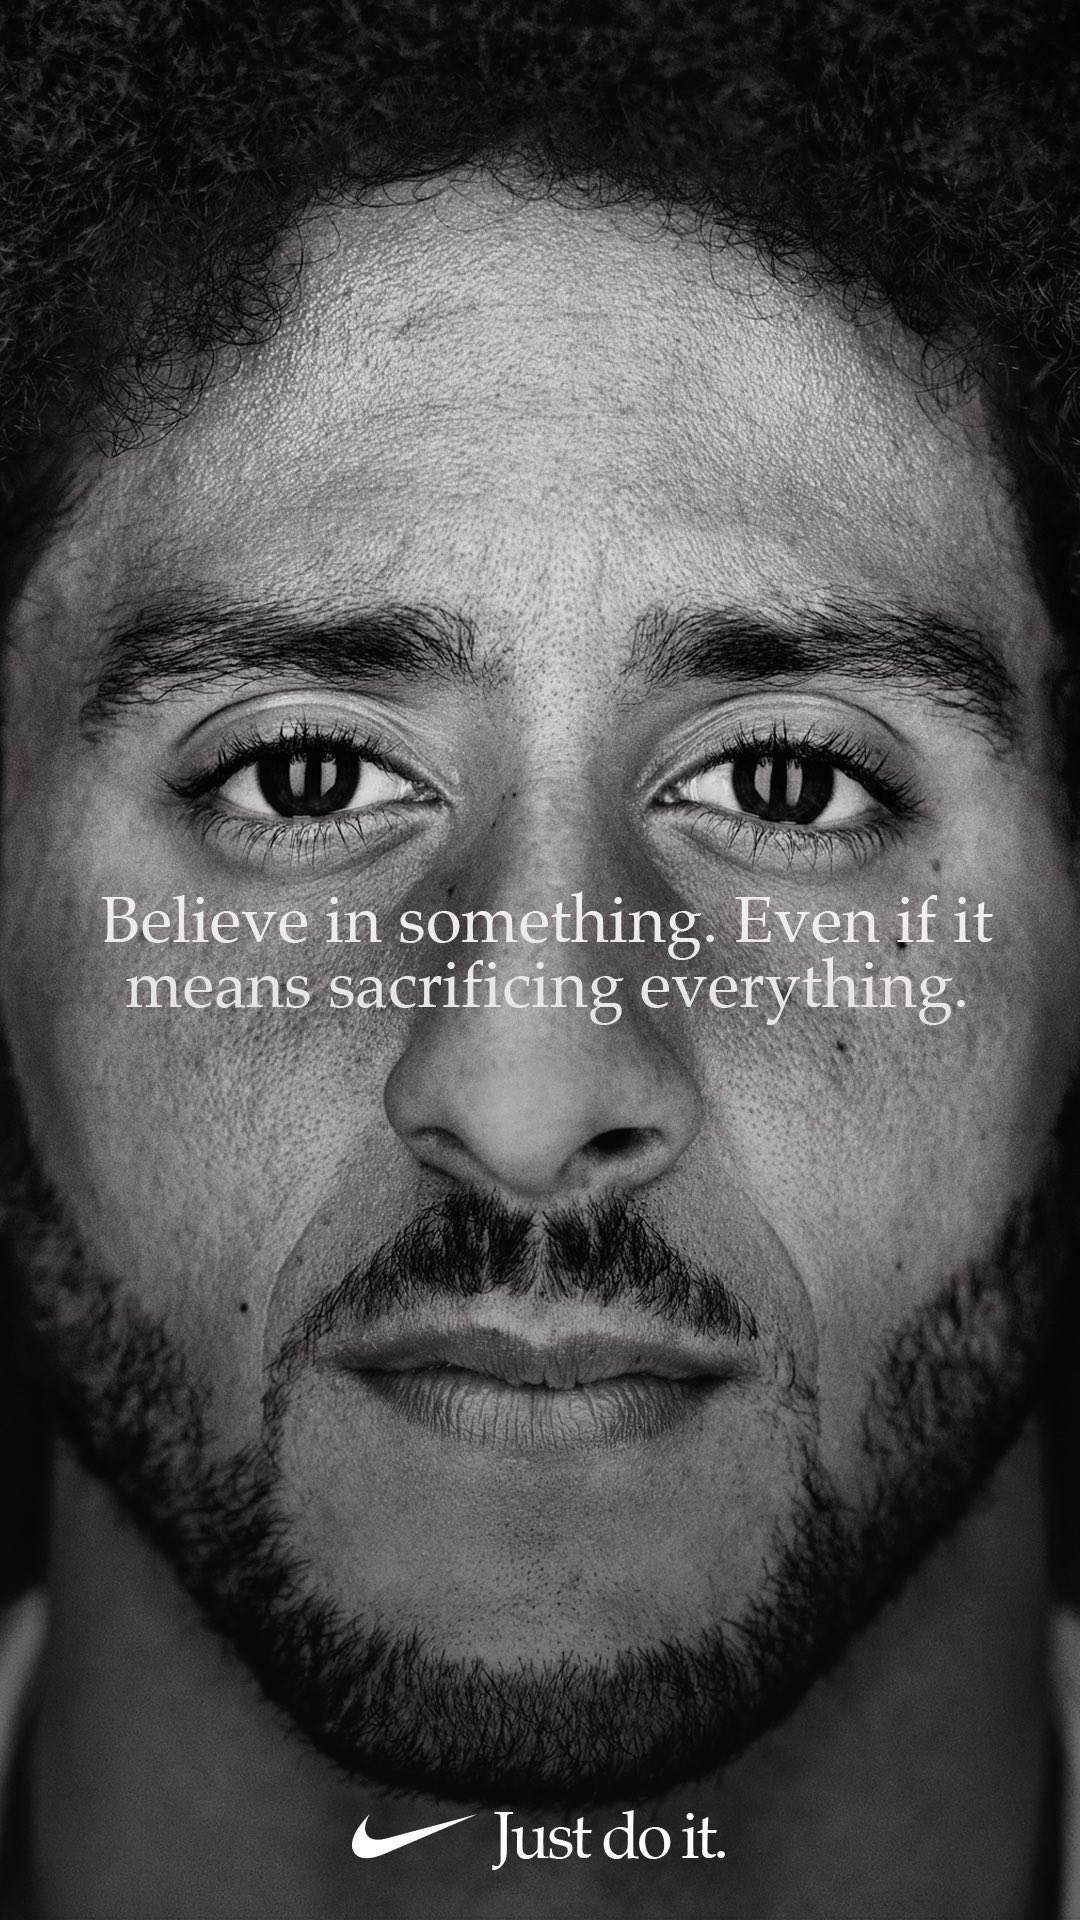 Believe in something, even if it means sacrificing everything. #JustDoIt https://t.co/SRWkMIDdaO